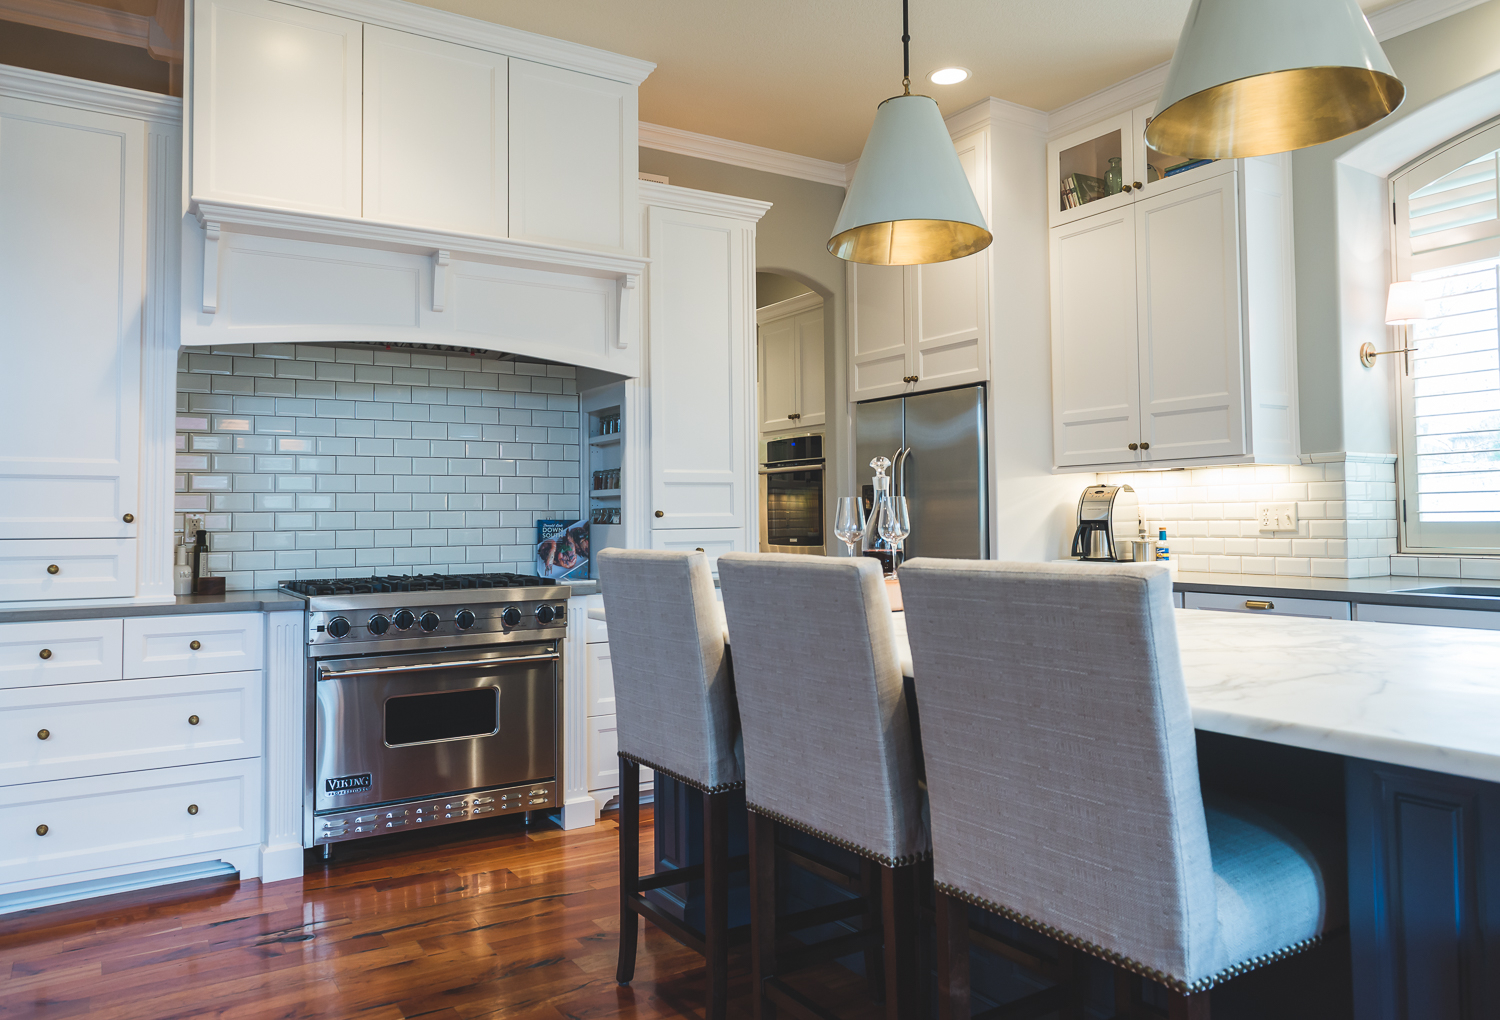 The white cabinets brightened the entire space and made the existing floors look better than ever. www.saranobledesigns.com